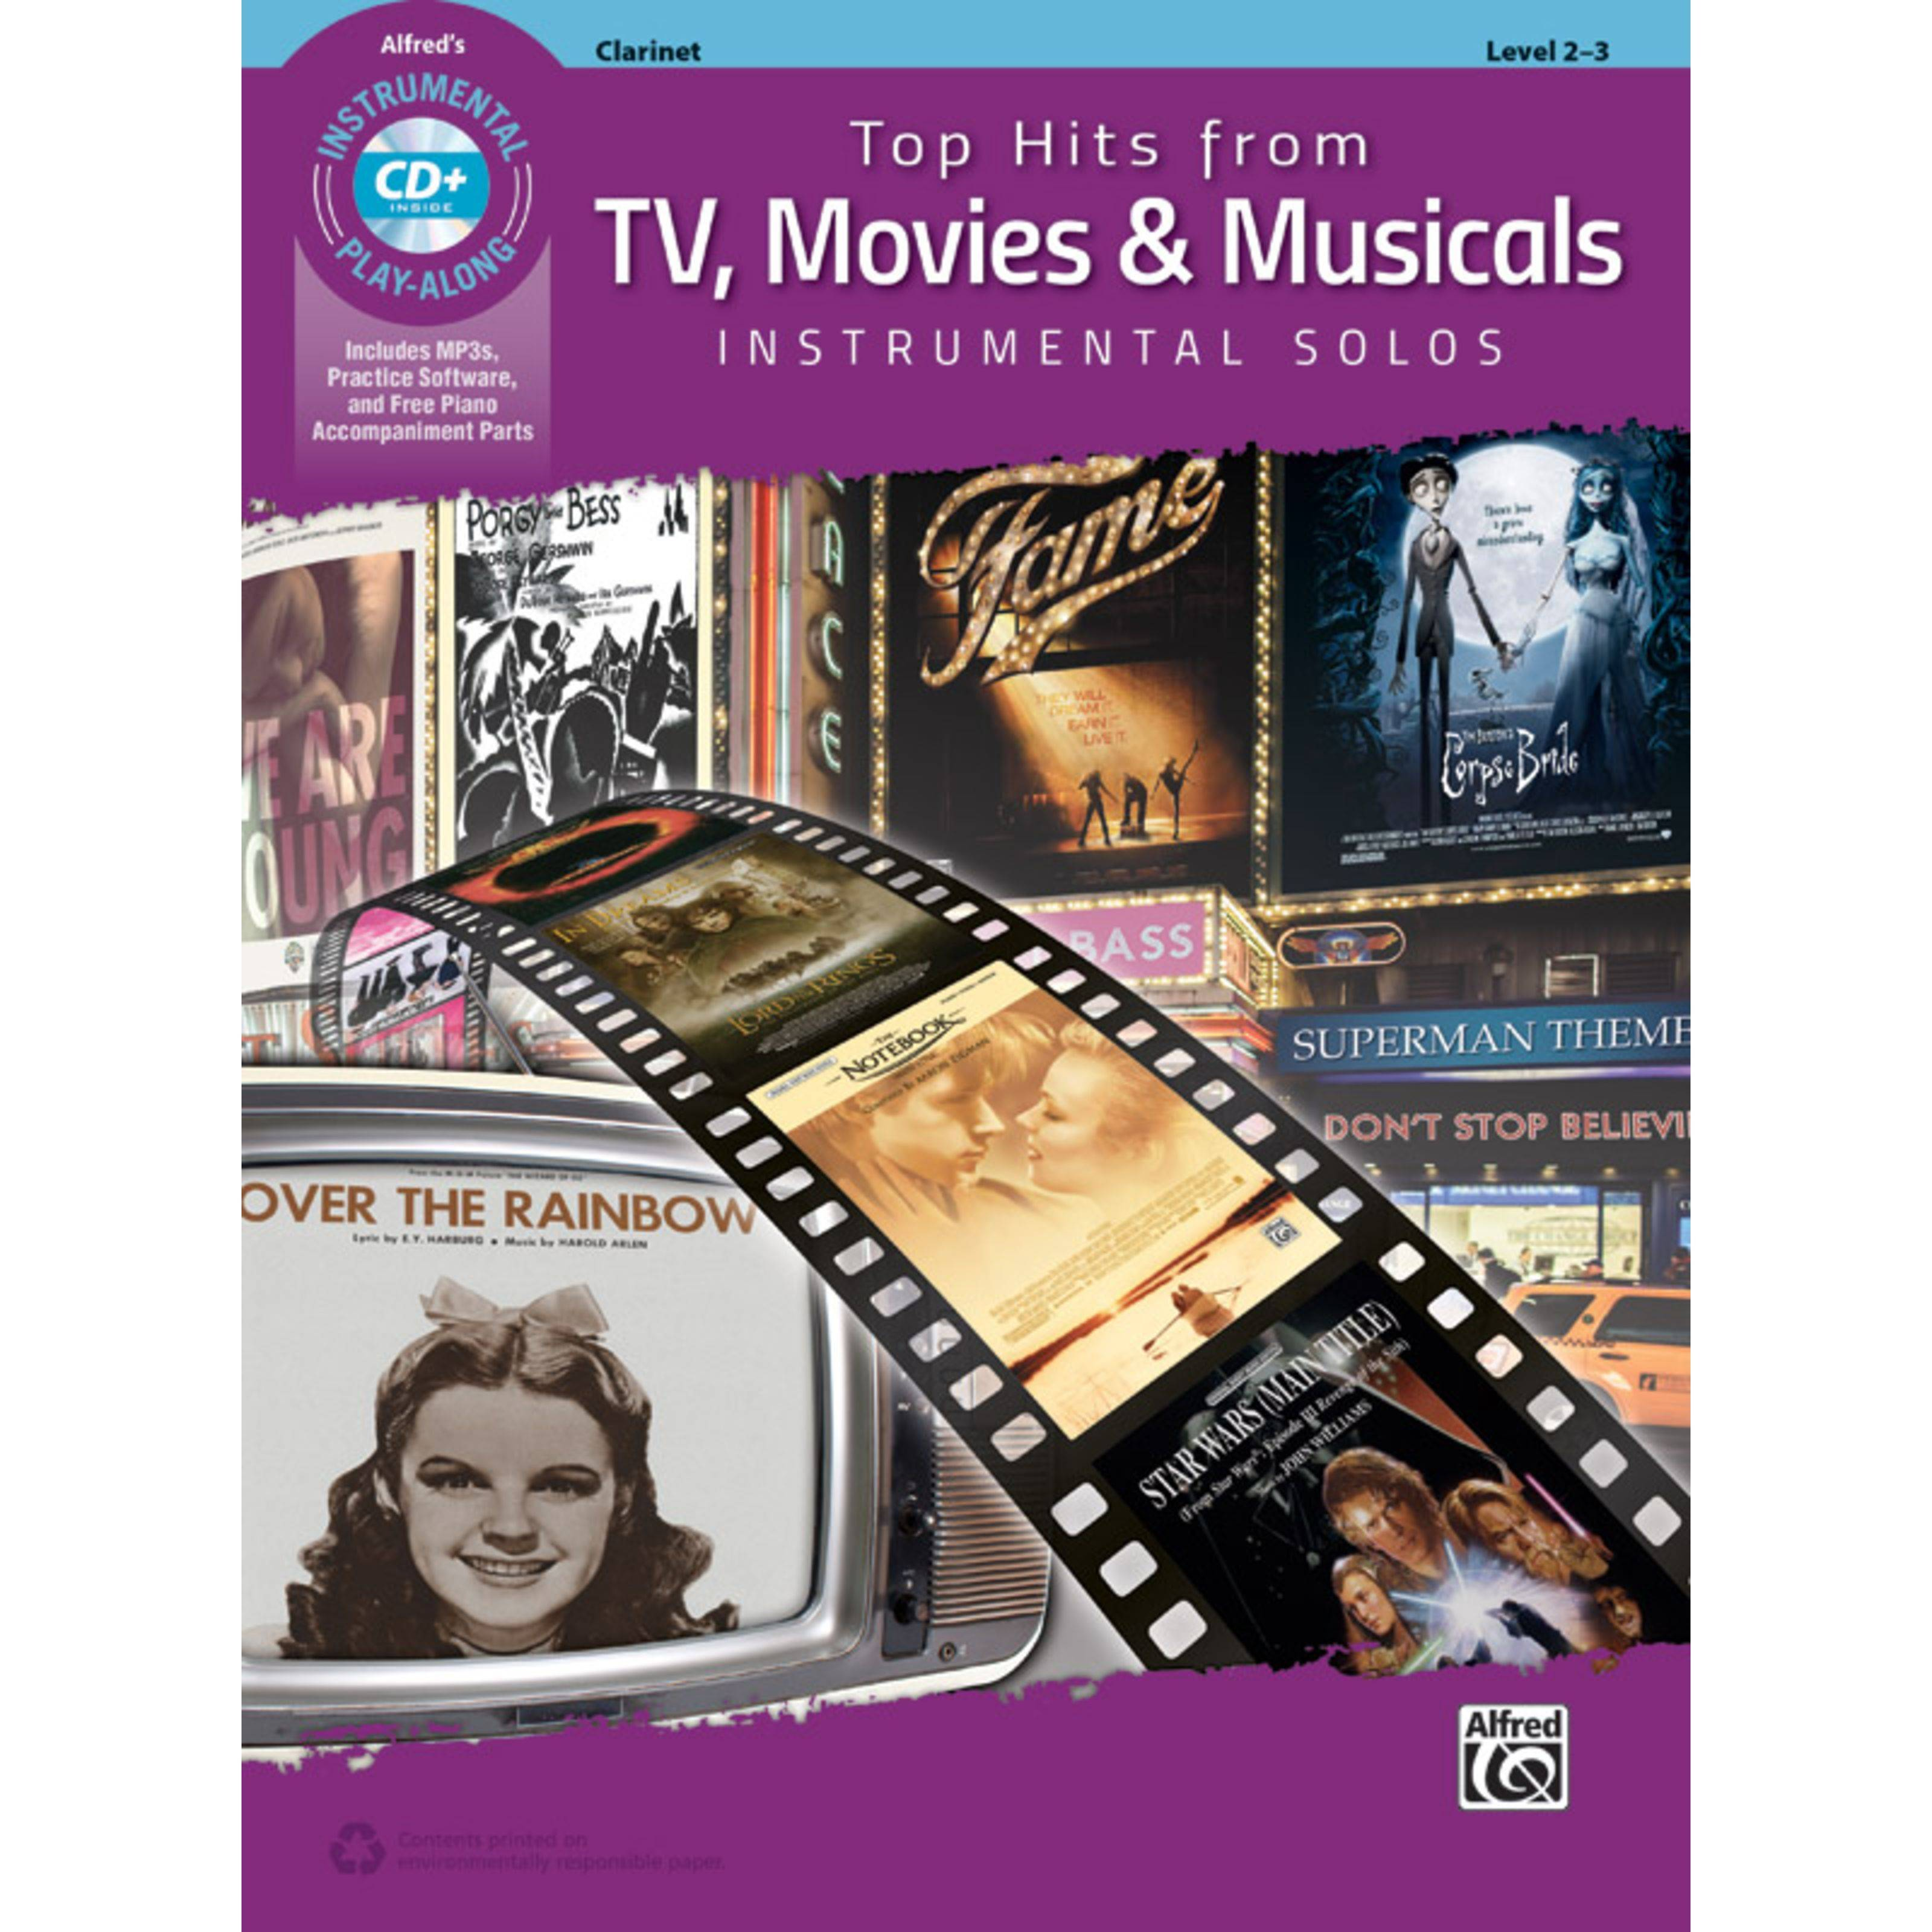 Alfred Music Top Hits from TV, Movies & Musicals – Clarinet